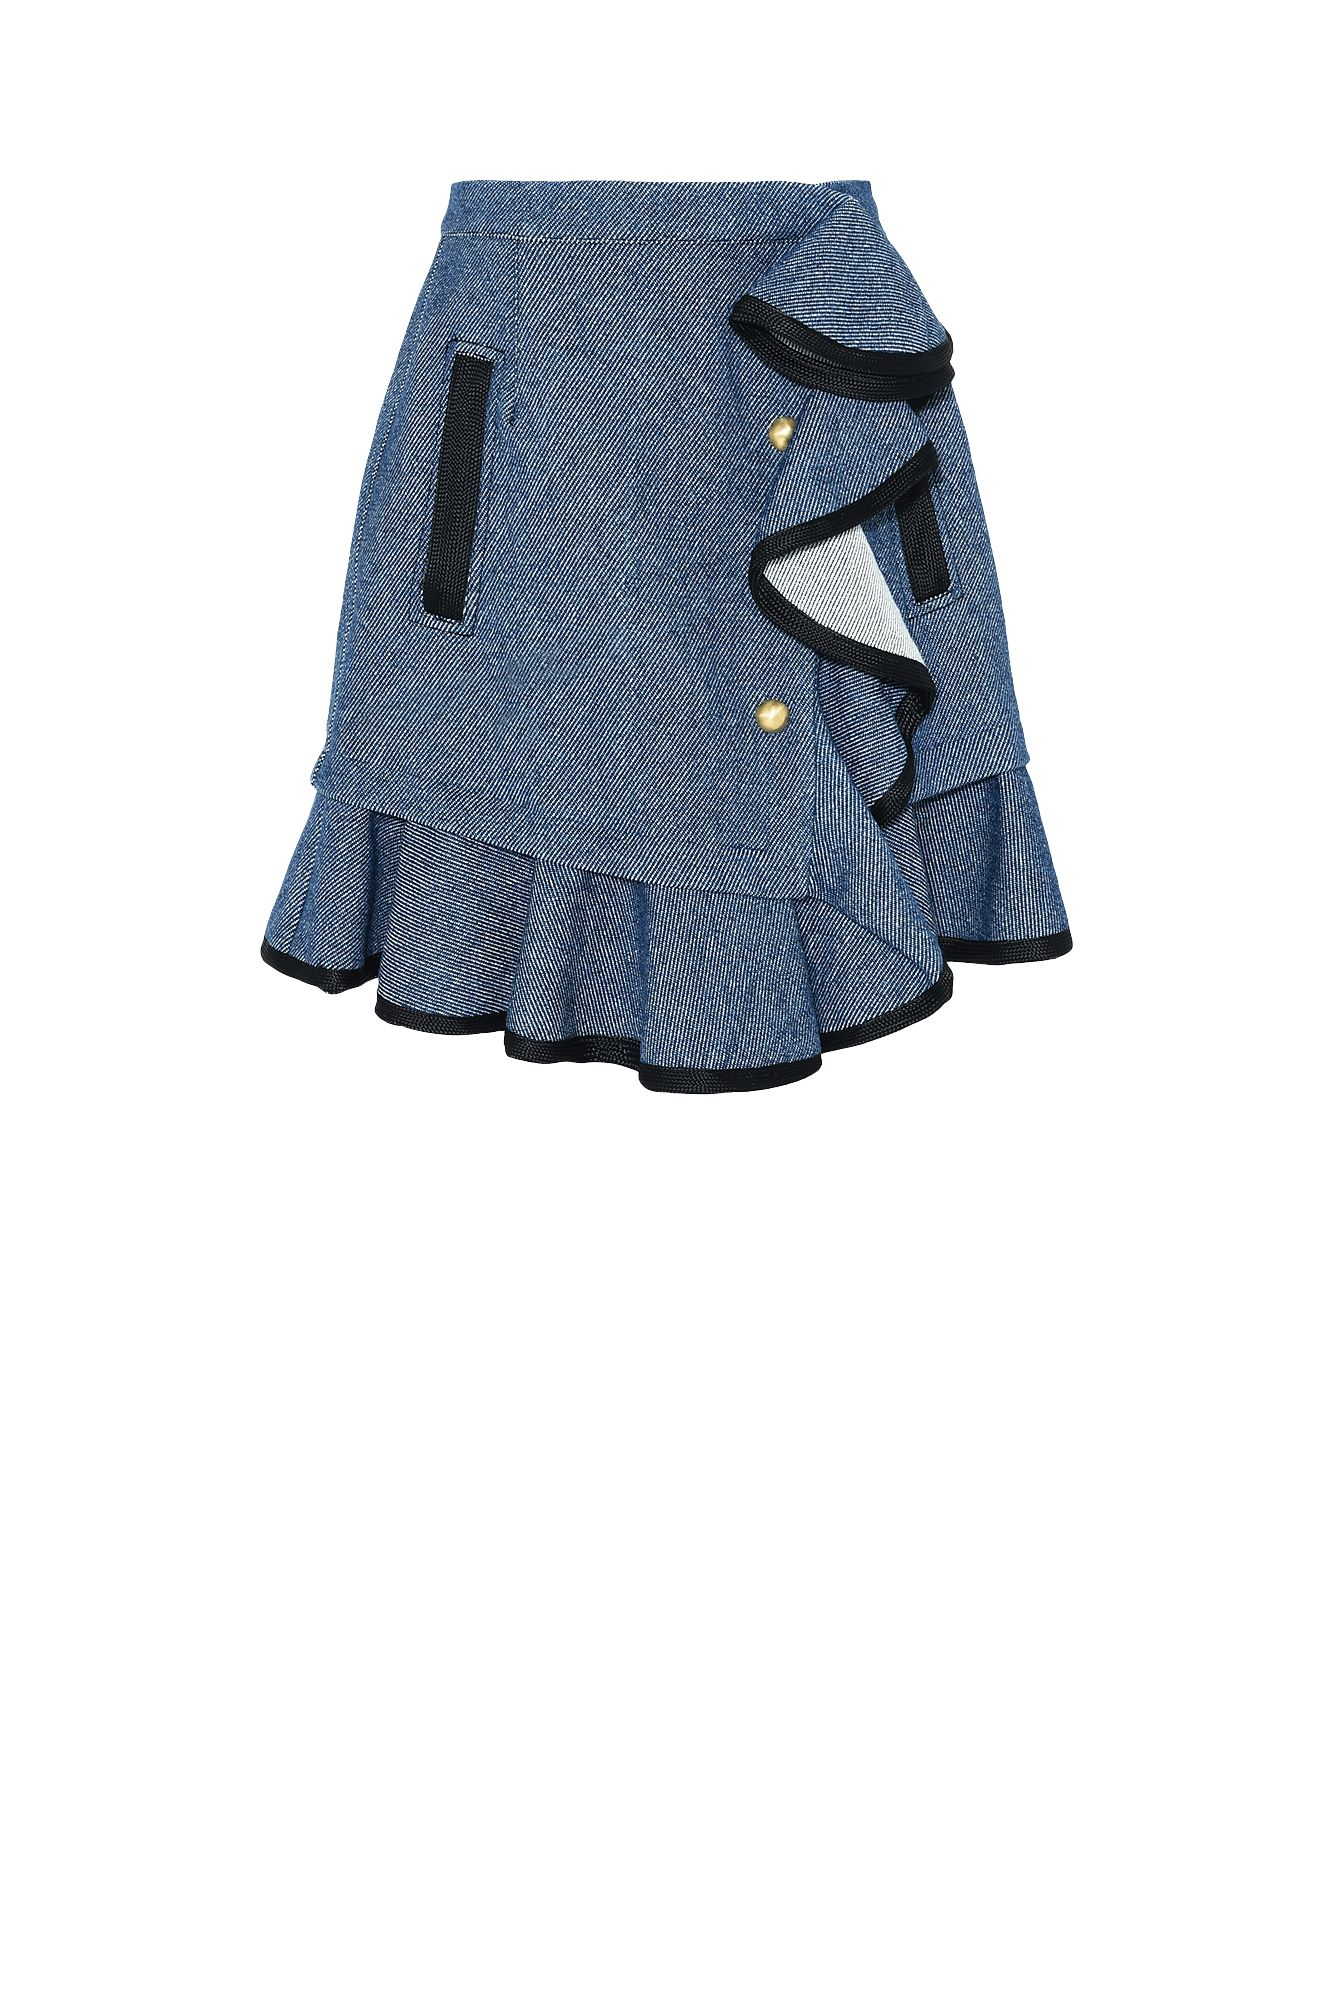 Denim skirt with flounces